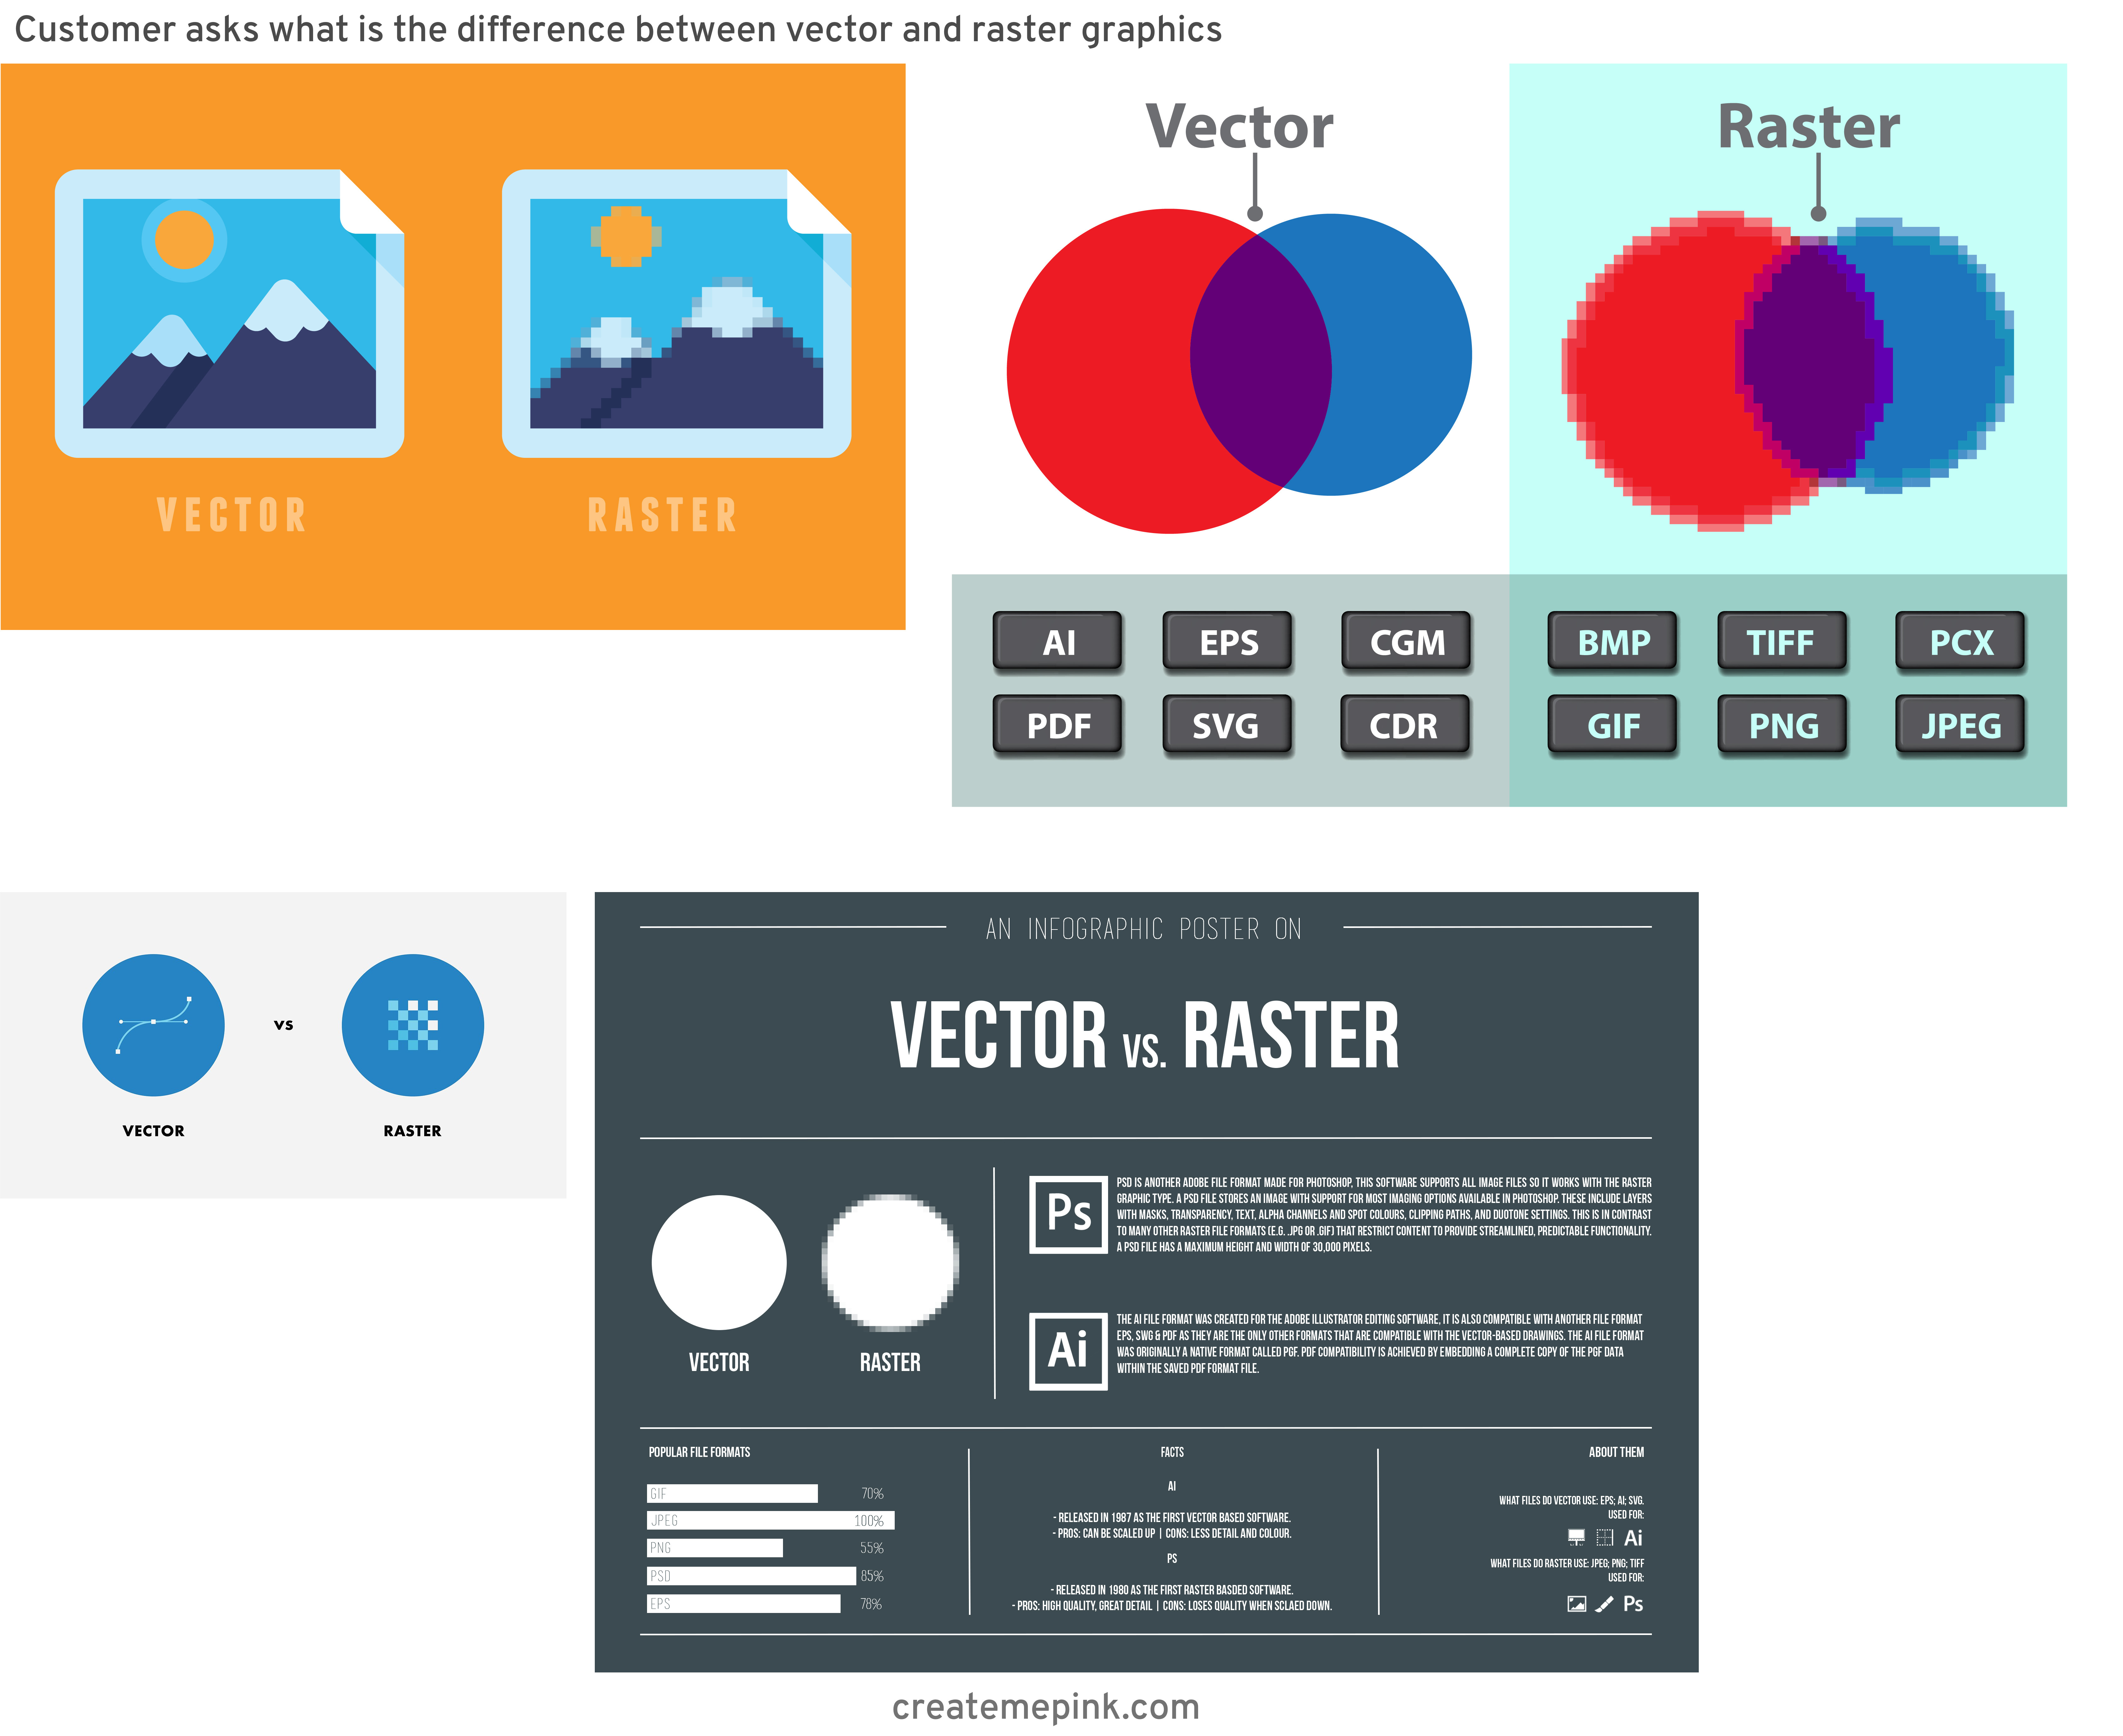 Difference Between Raster And Vector: Customer Asks What Is The Difference Between Vector And Raster Graphics